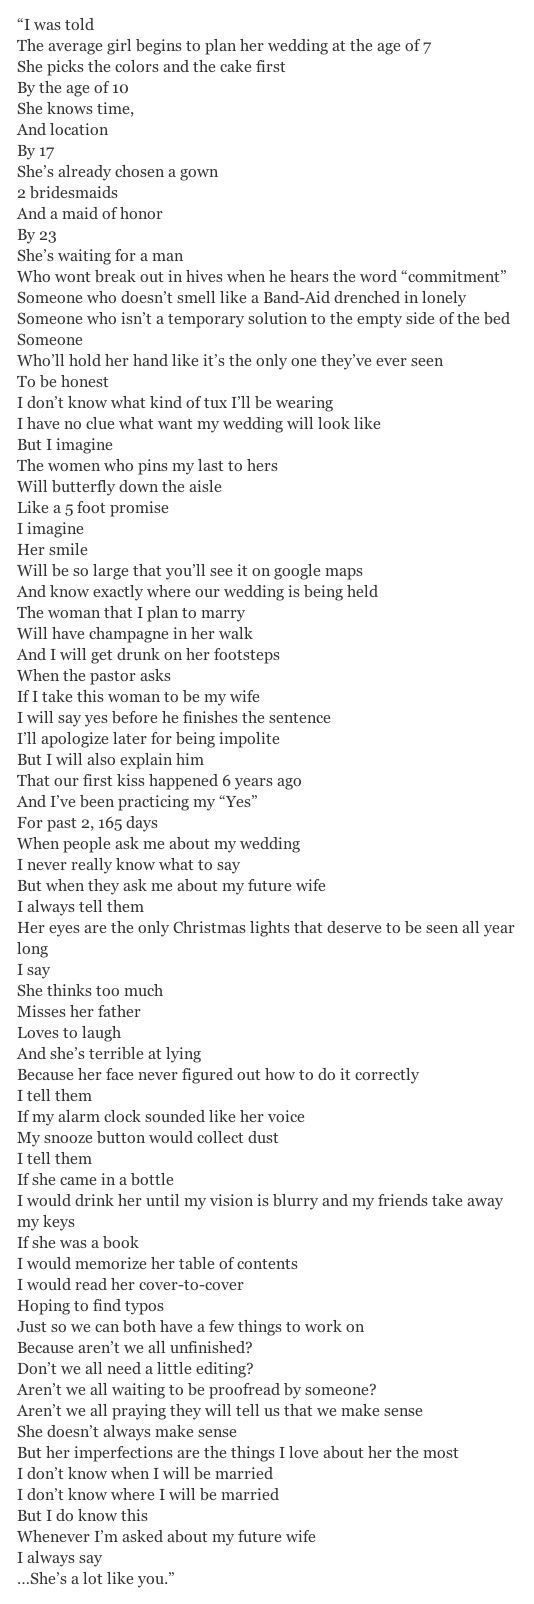 Repining this because it's my favorite. Seriously take the time to read it